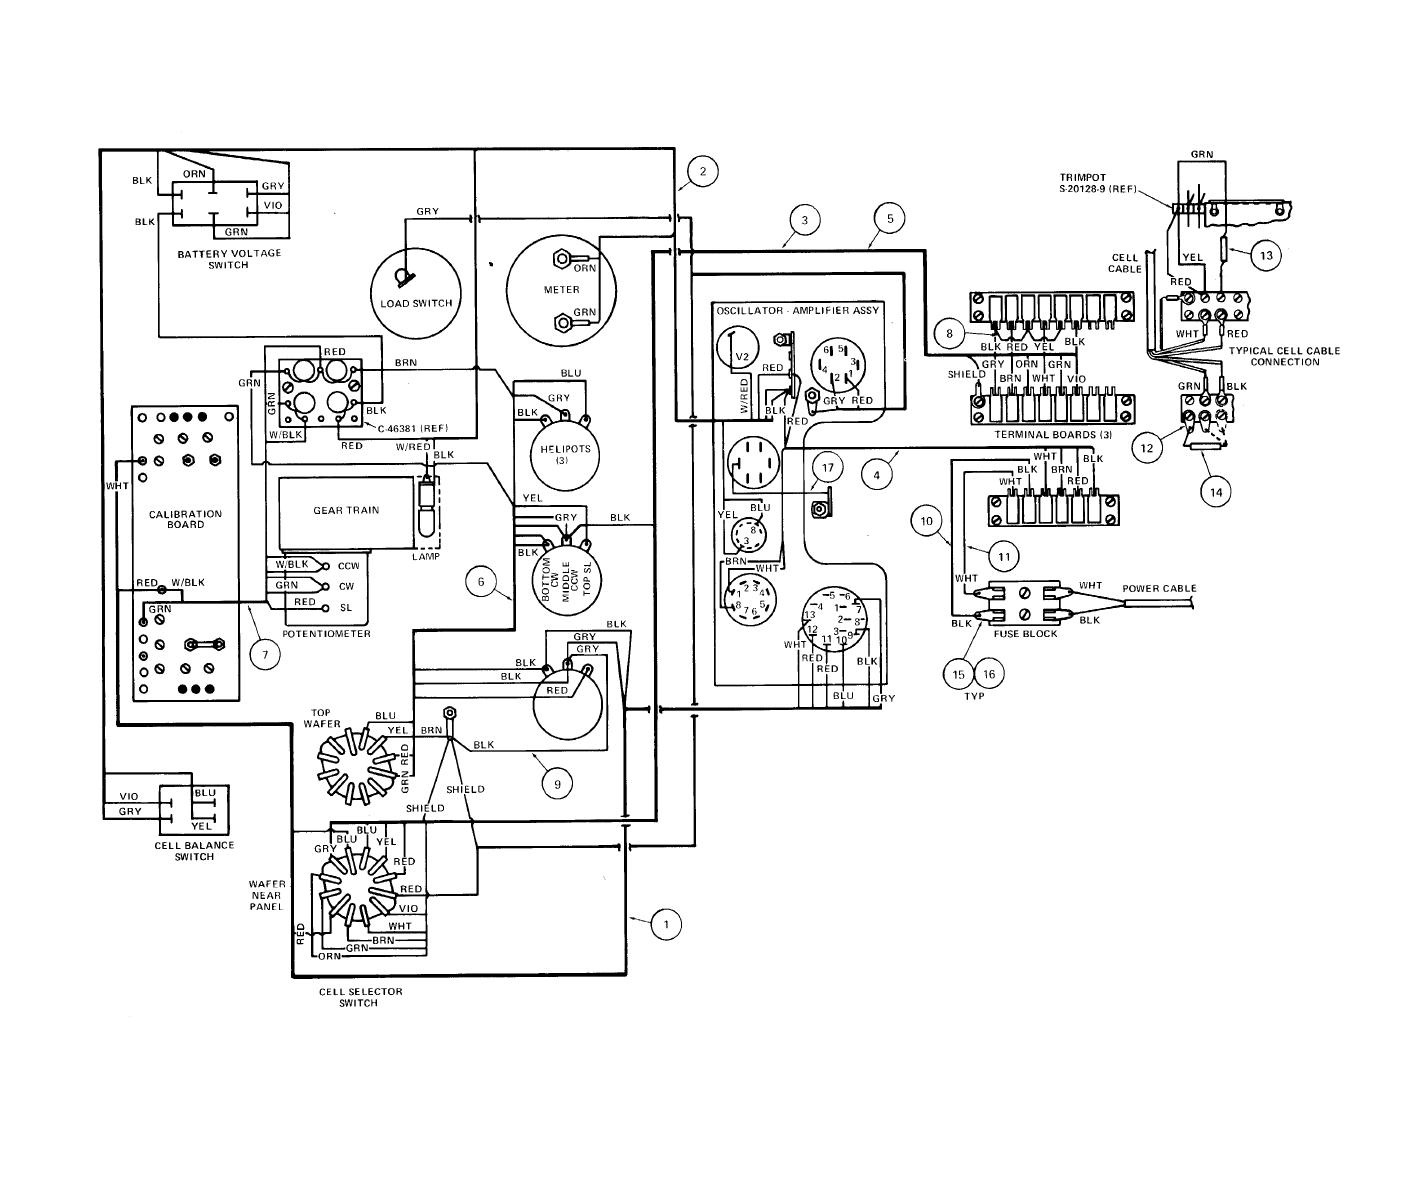 Jackson Ps4 Wiring Diagram